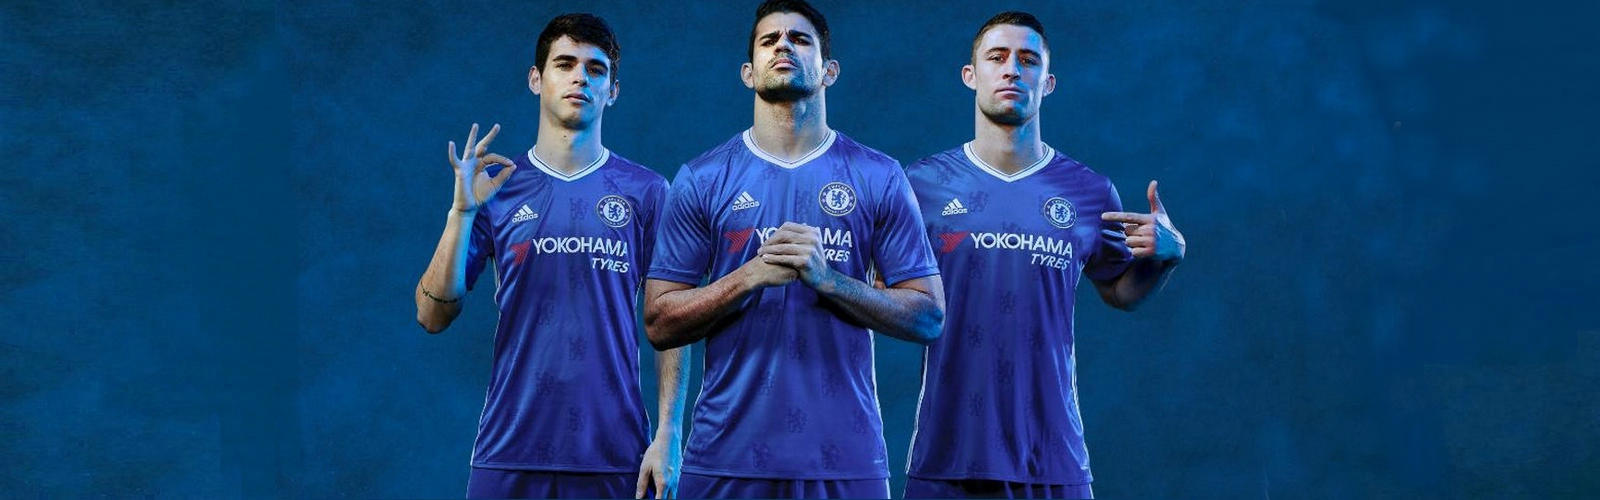 Chelsea 2016/17 Authentic, Replica Jersey For Youth and Women